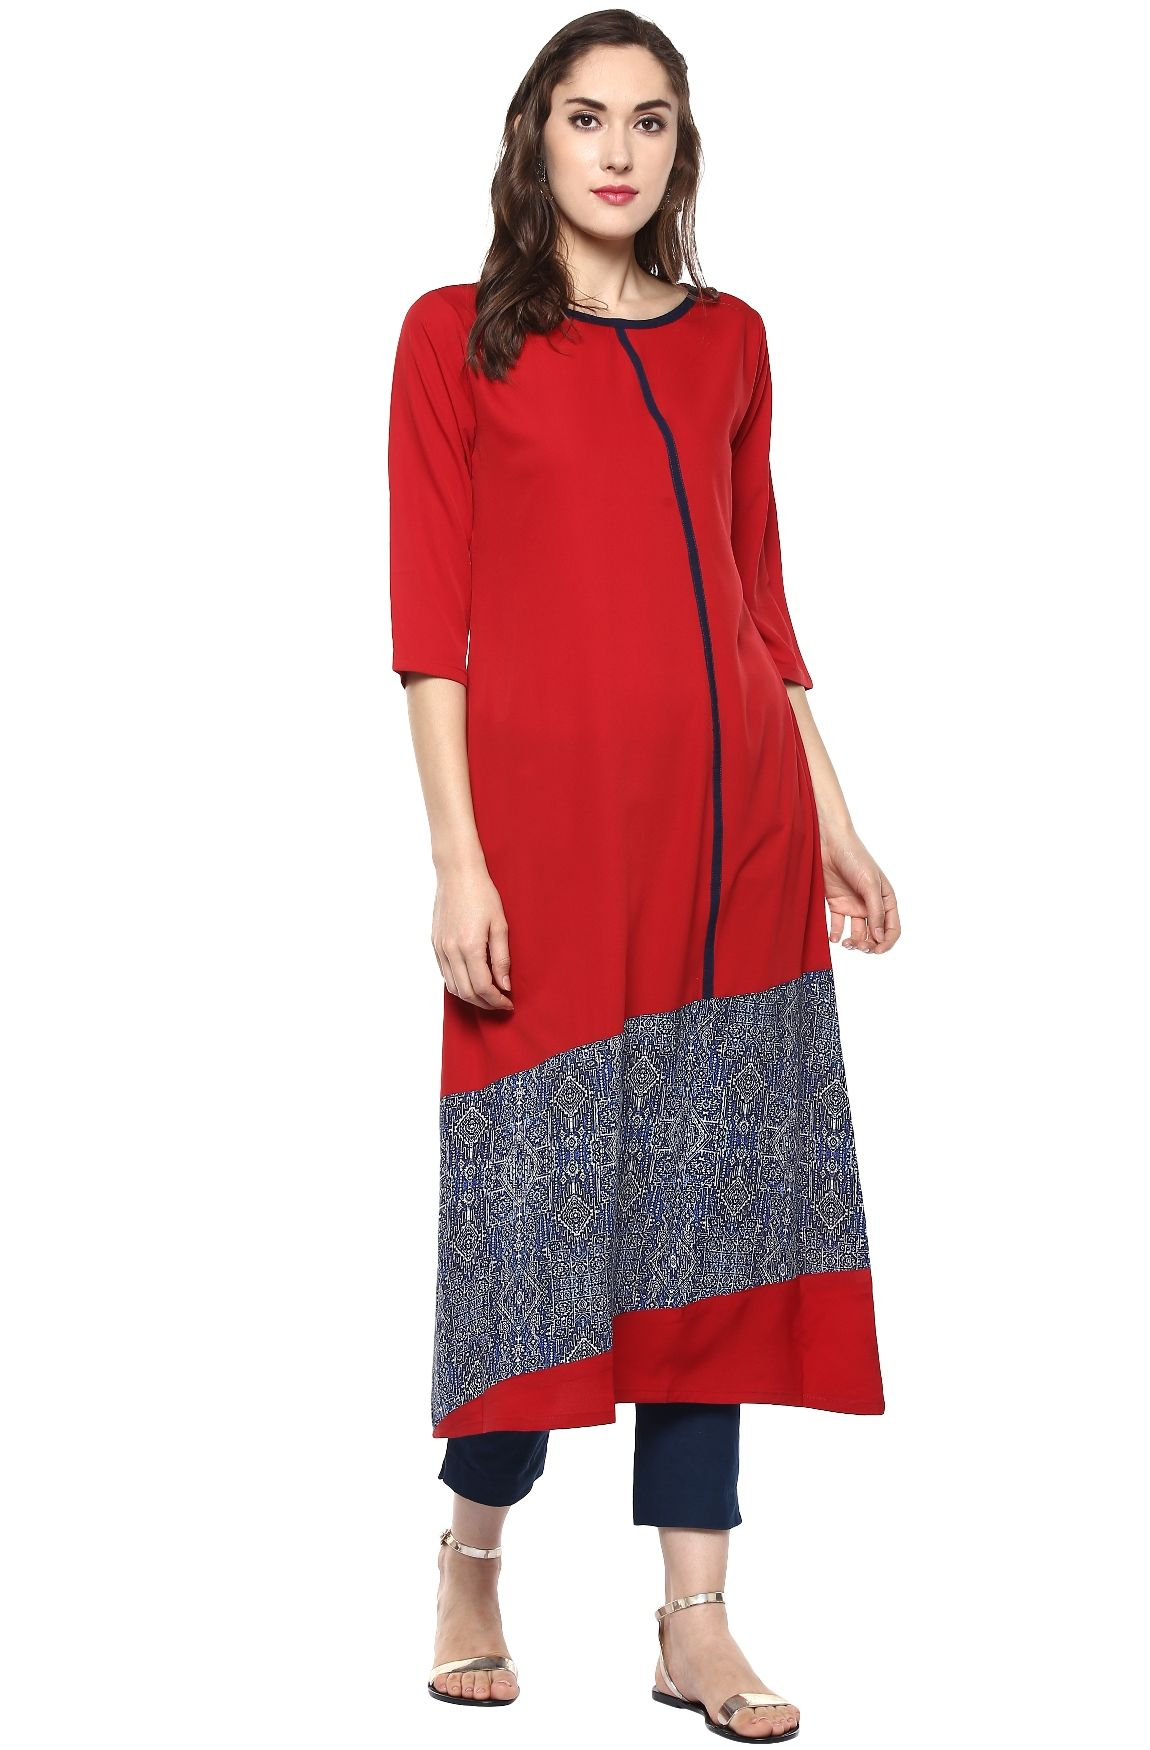 Voonik - Janasya Women's Kurti| Buy 3 at Rs.999